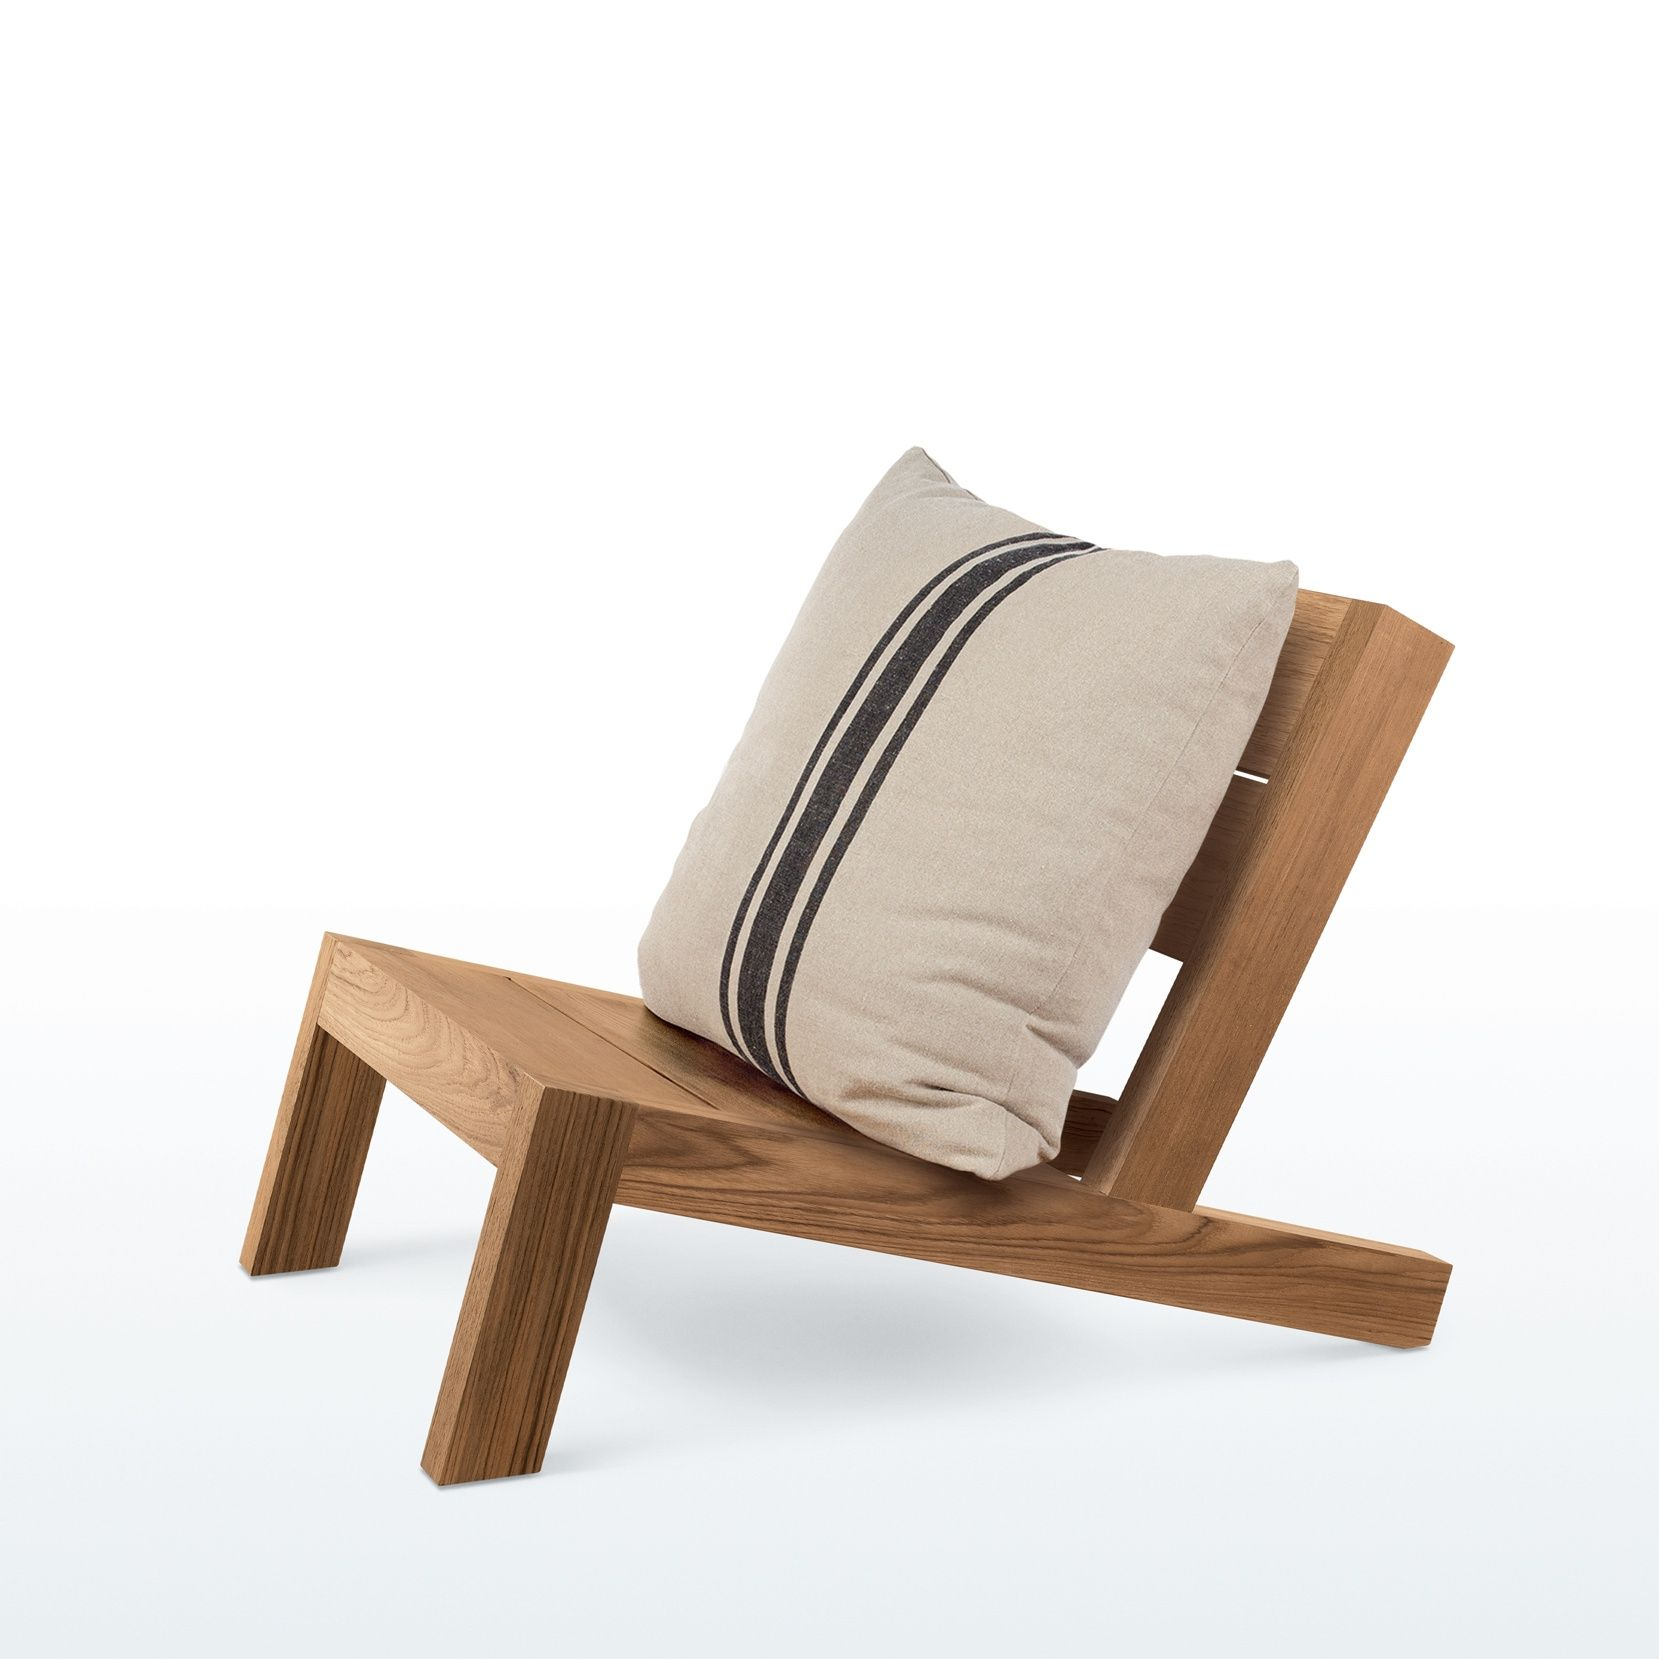 CABO ARMLESS BEACH CHAIR   Malibu   Collections   Furniture | James Perse  Los Angeles